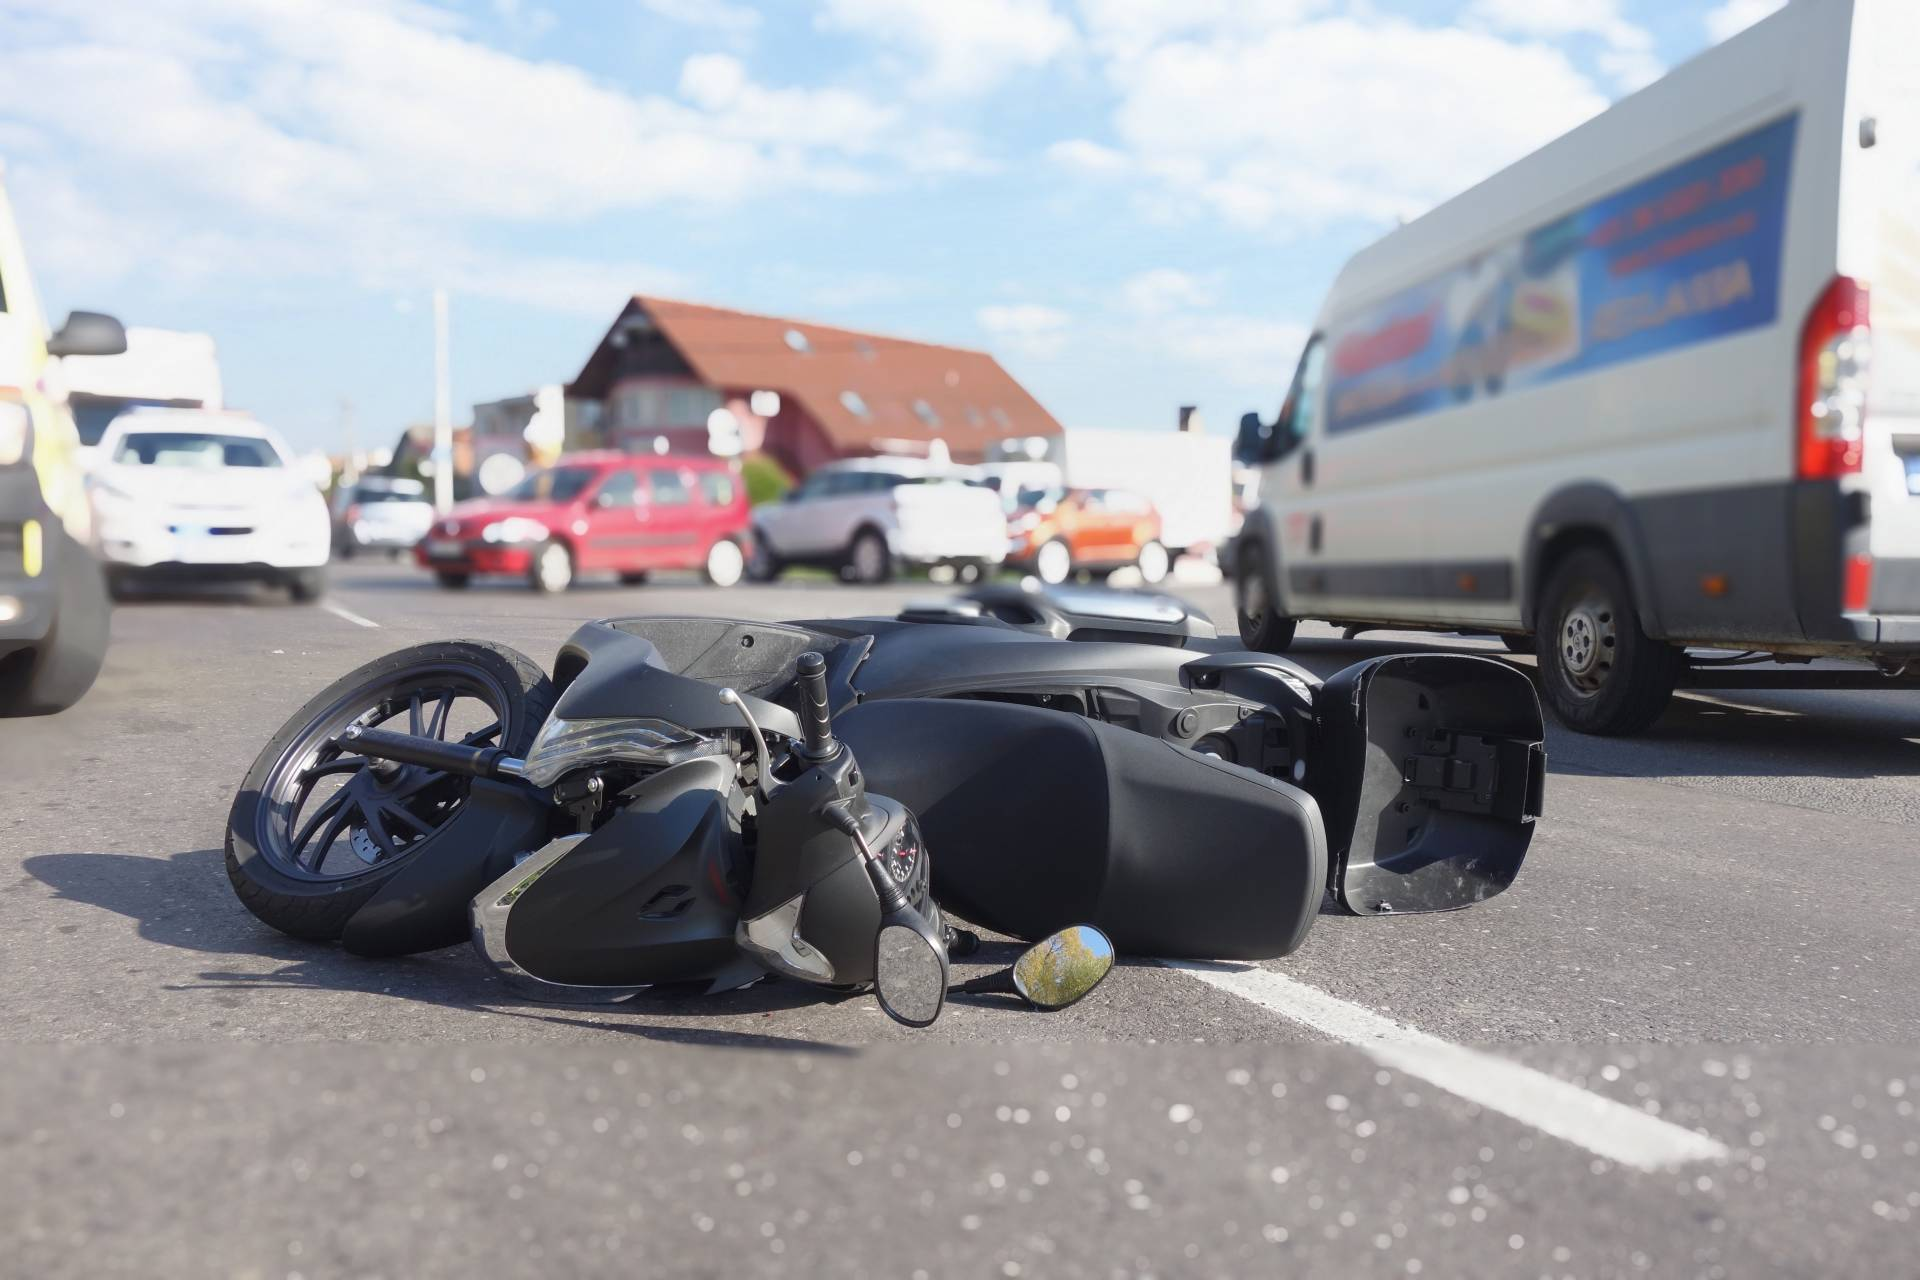 Need a motorcycle accident attorney in Macon? Schedule a free consultation with The Angell Law Firm today!